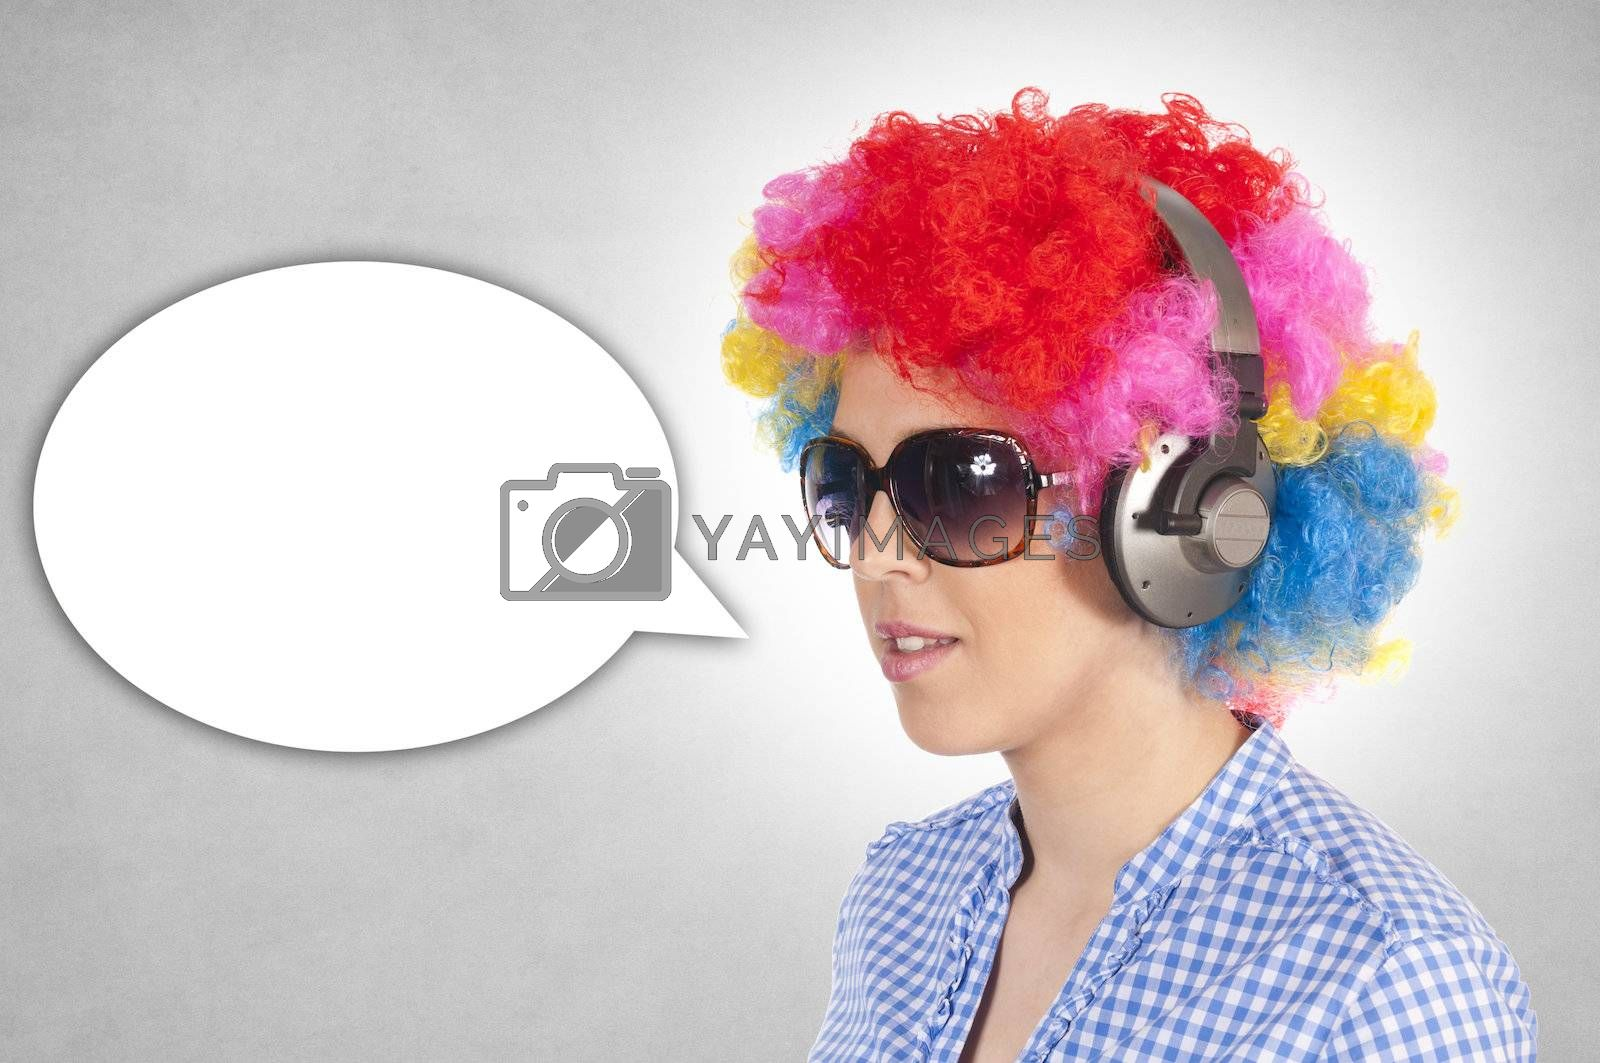 Female with clown wig and headphones on gray background